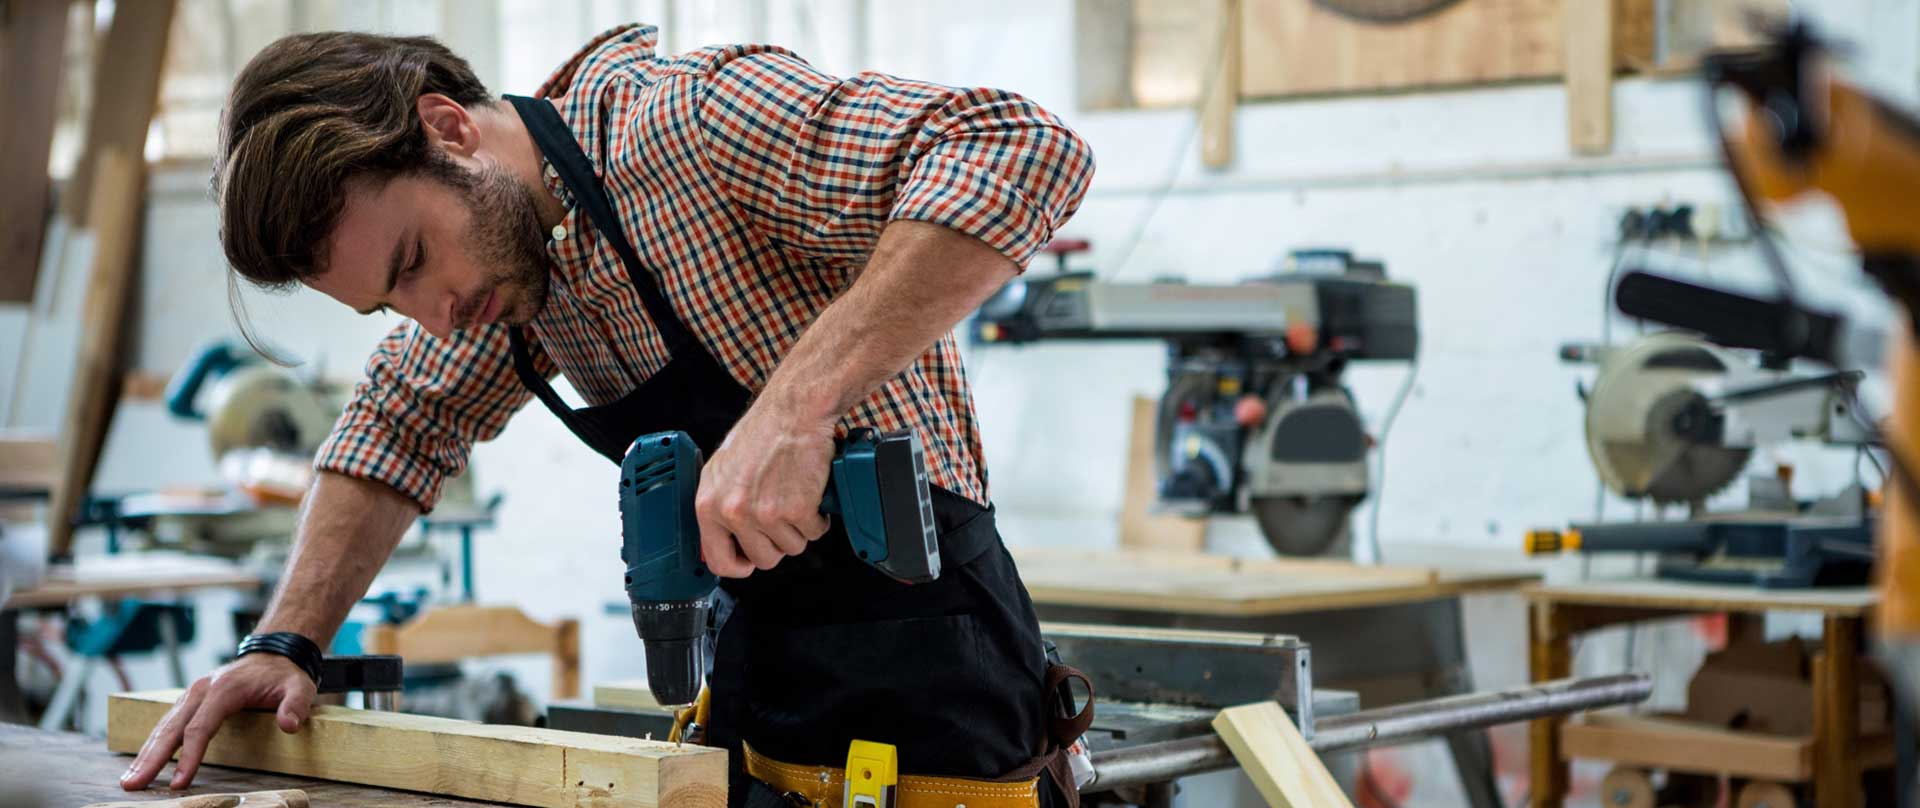 How to Use a Drill Safely In Home.